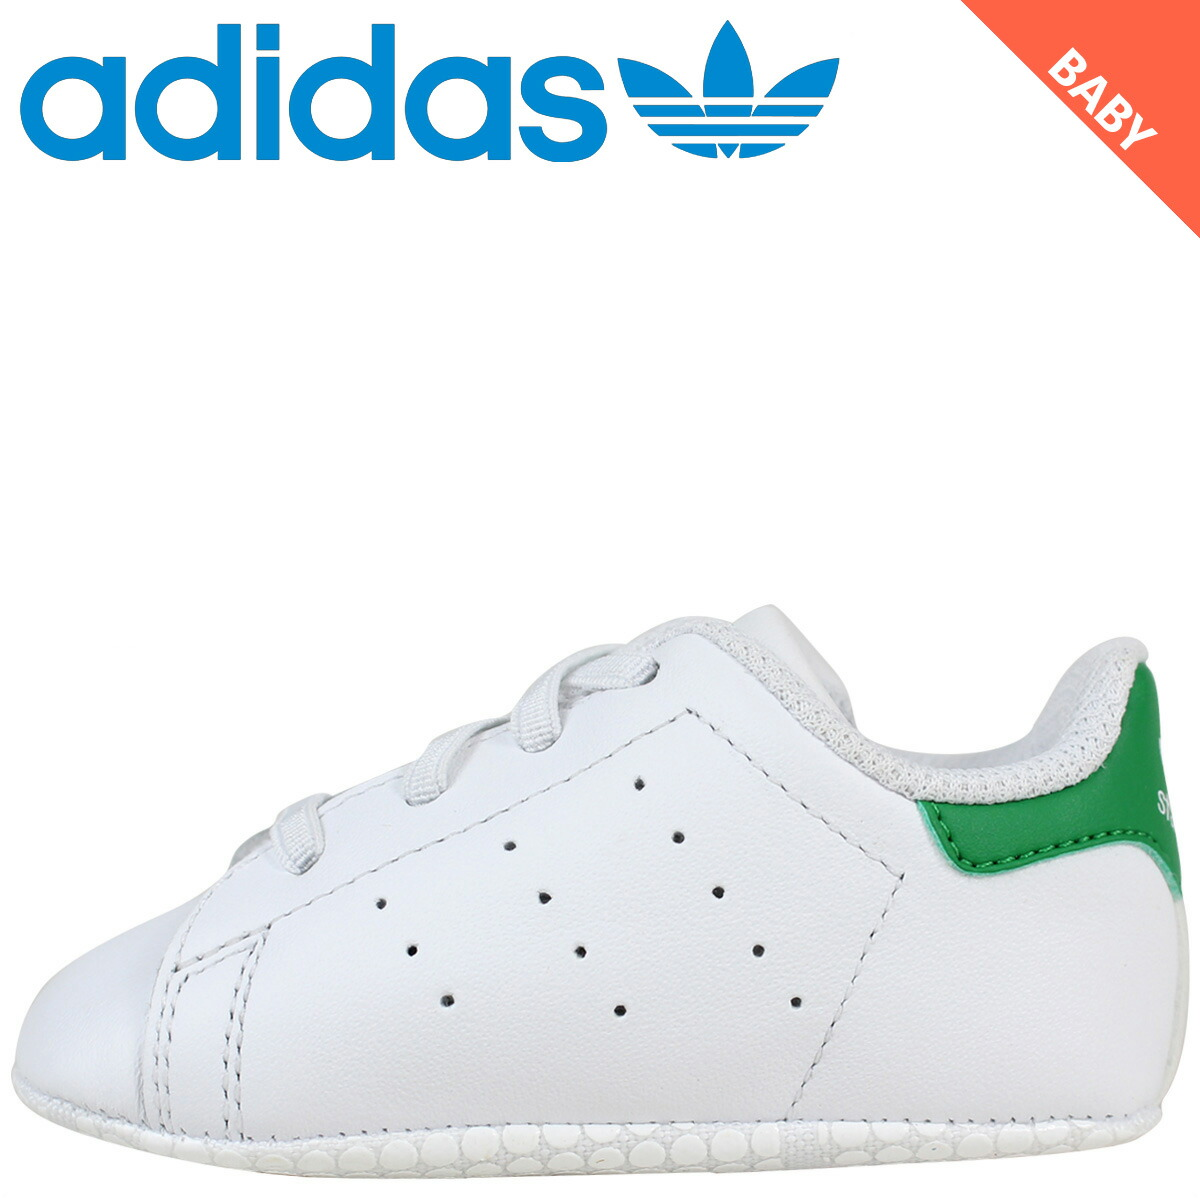 check out be9dc 6b45d Classic Mark symbolizes the adidas three lines are simple yet also said the  face of the brand impact and the classic